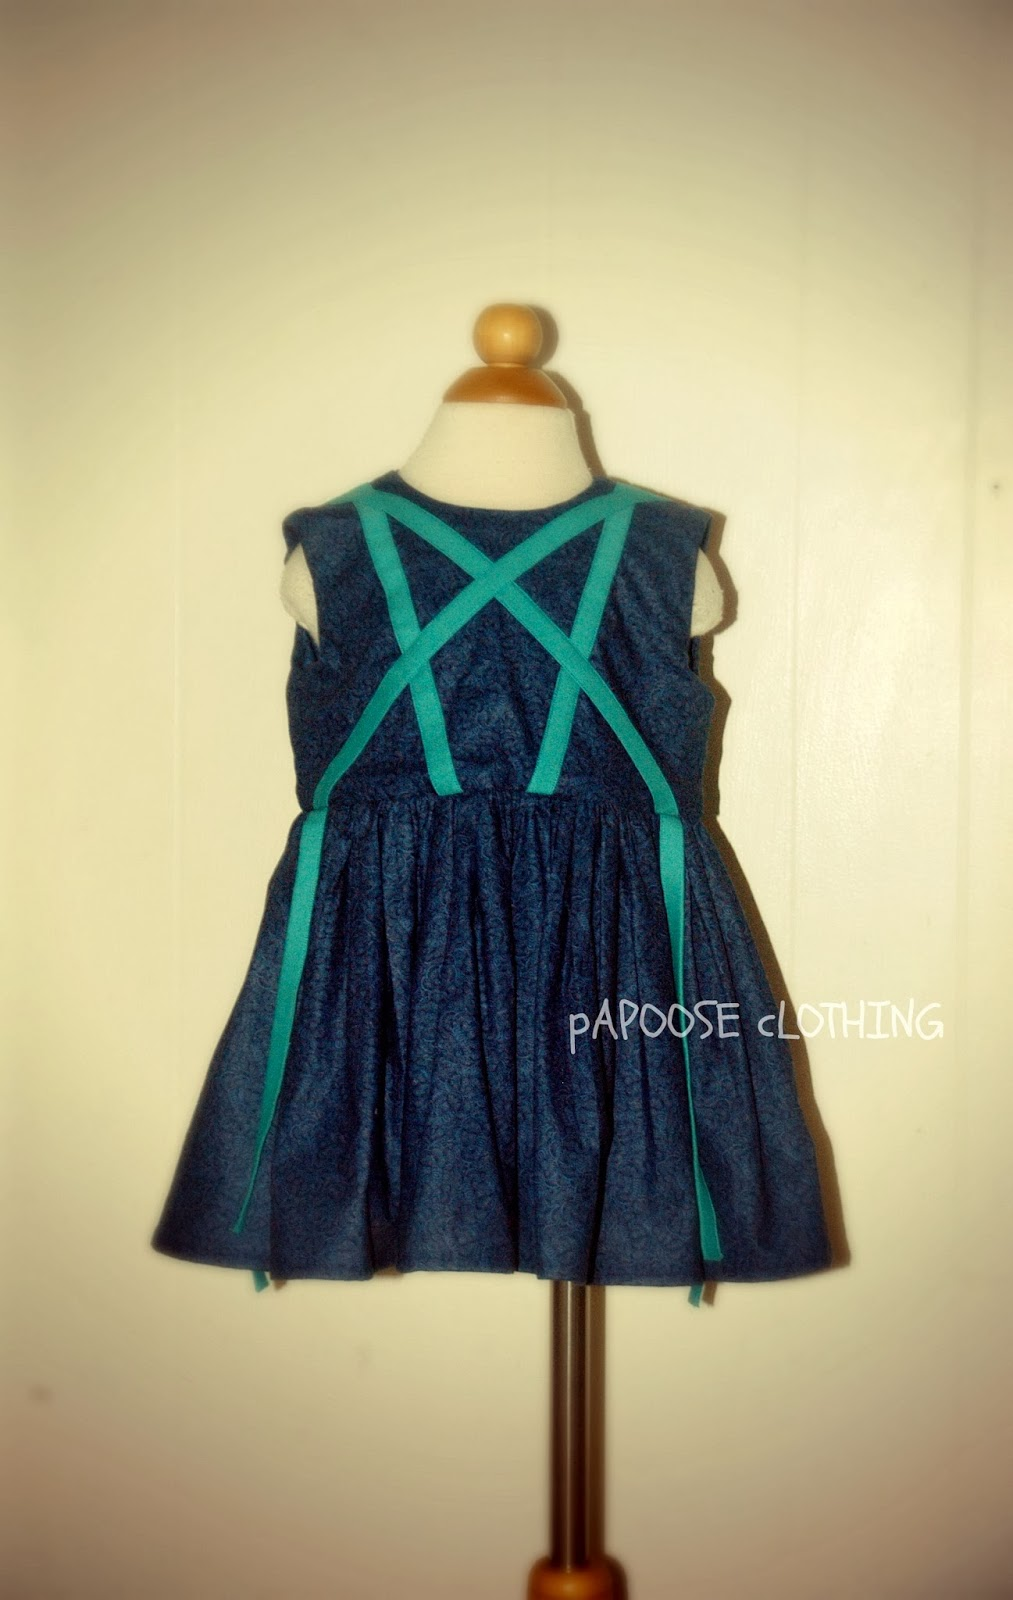 http://www.papooseclothing.com/store/p43/Cypress_Roots_Navy_Blue_Dress.html